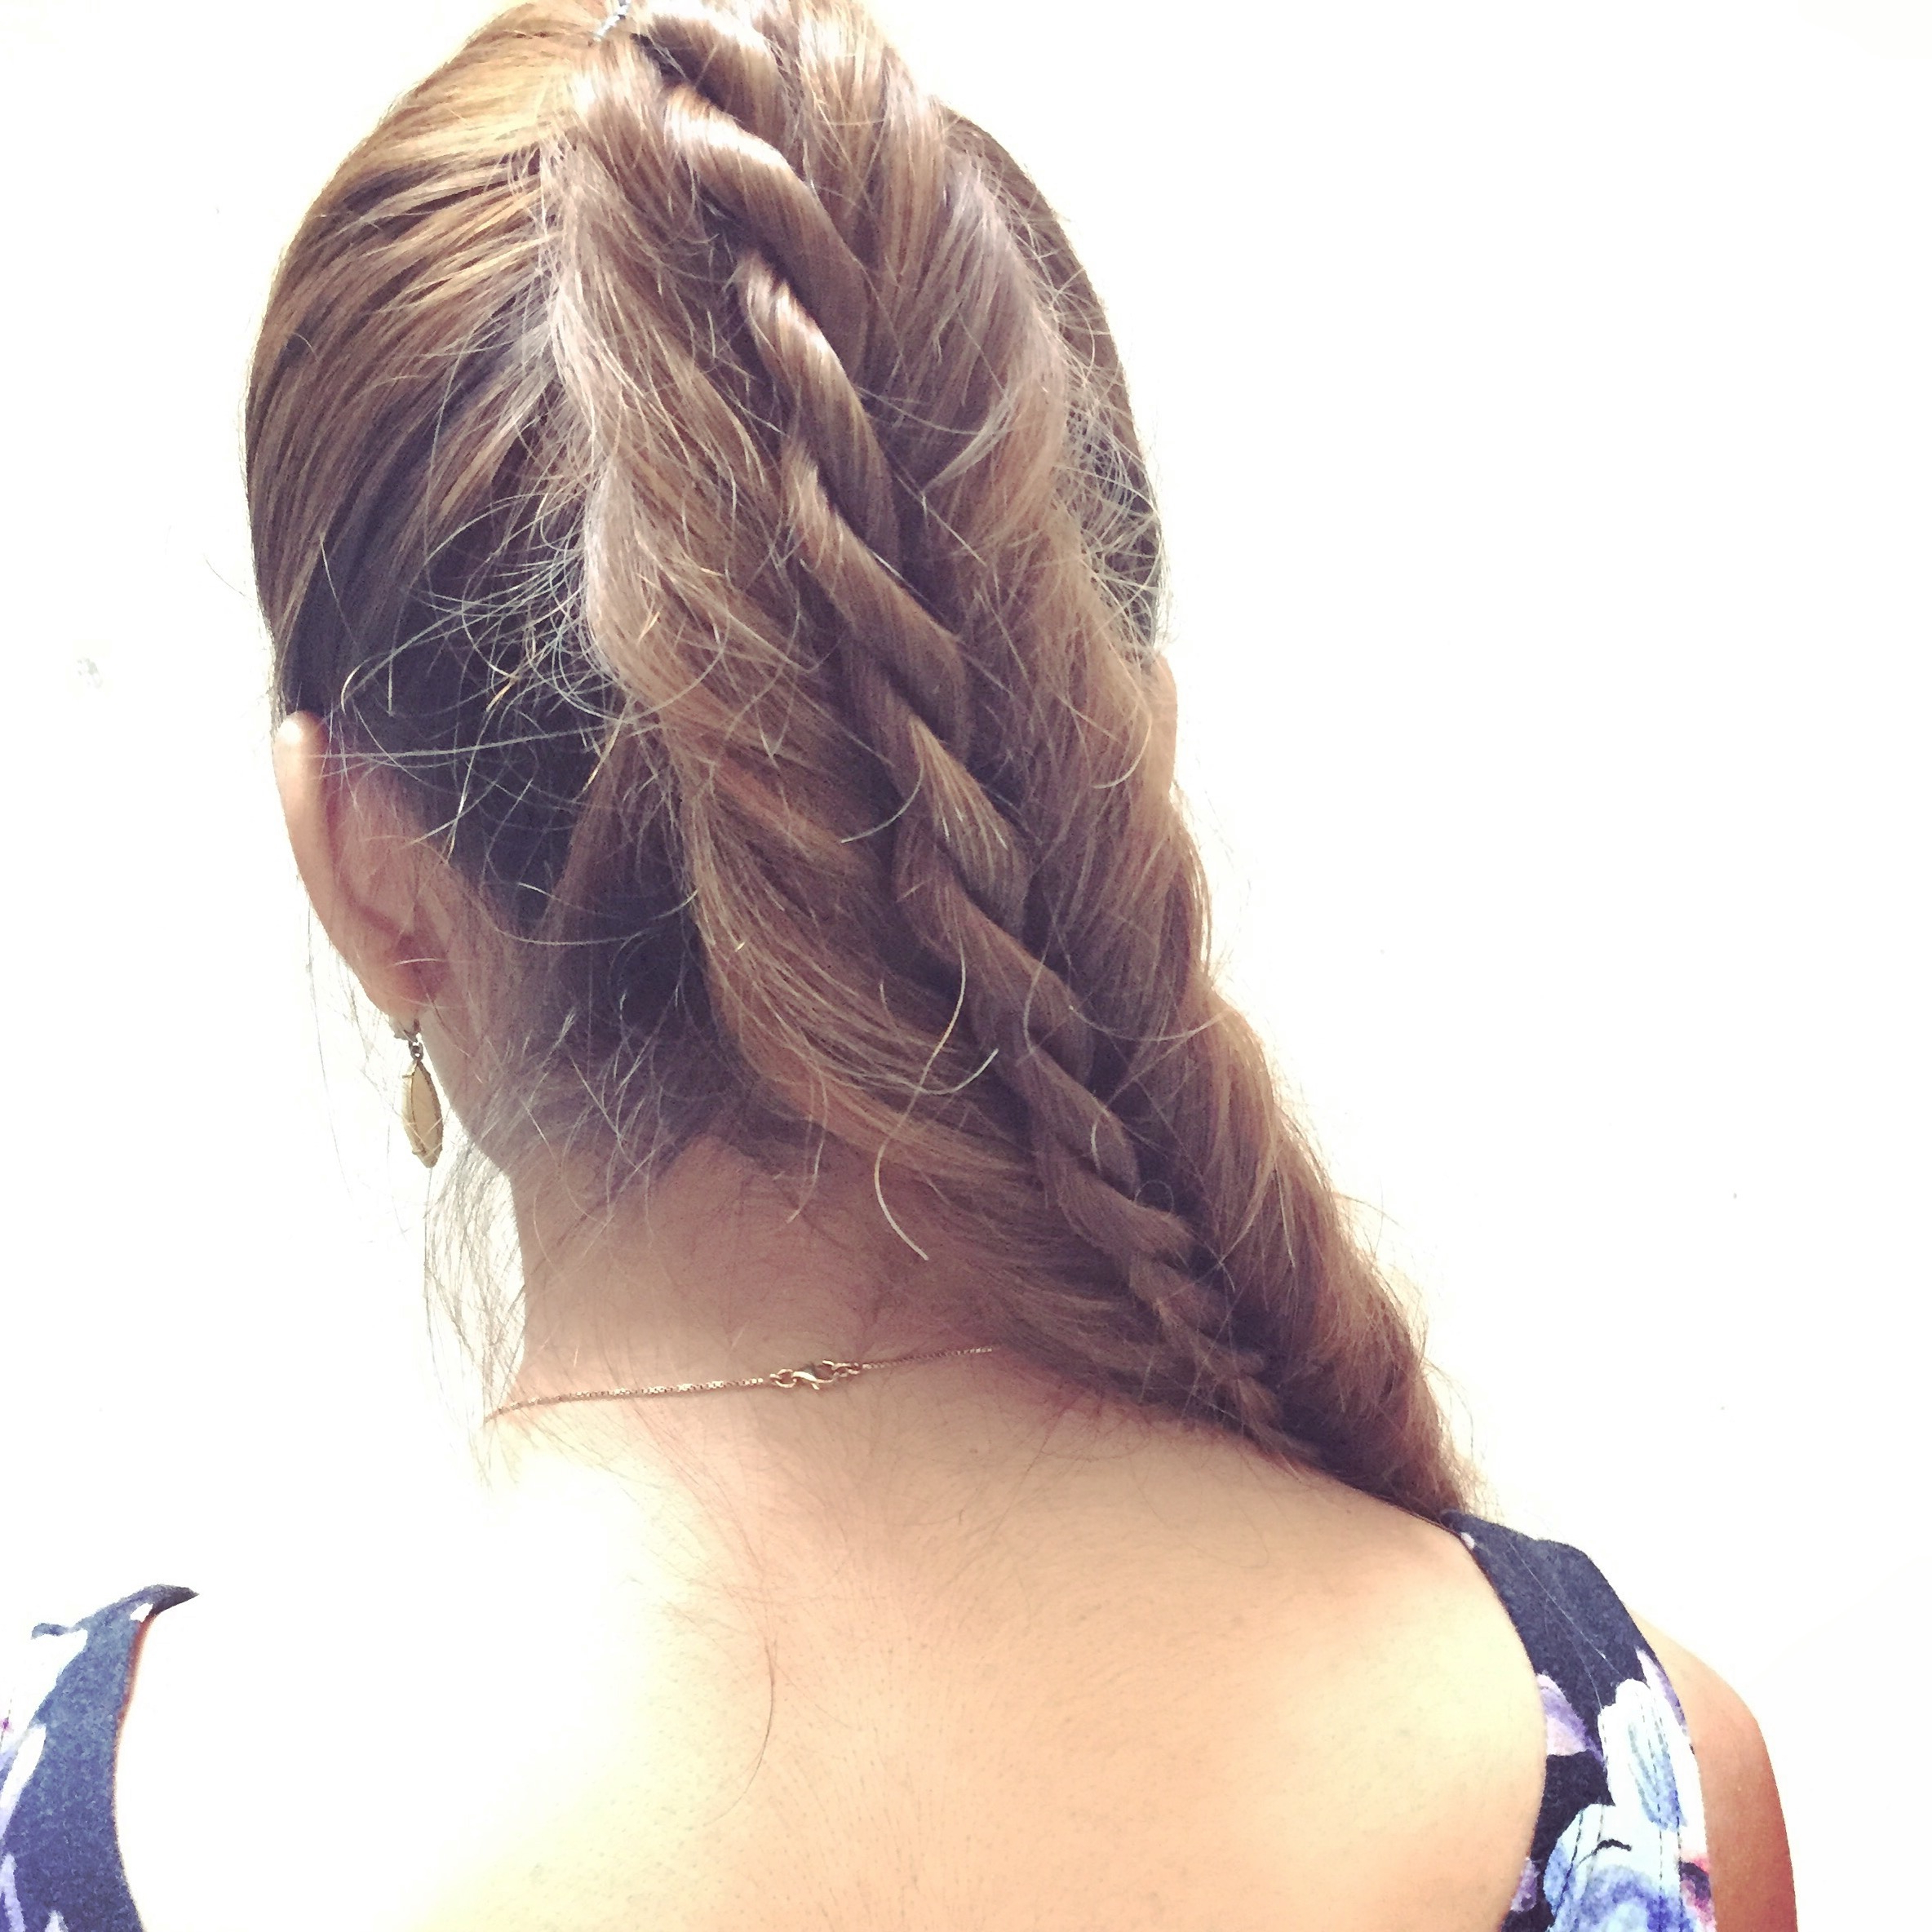 Tanvi Vayla » Fishtail+rope Braid Ponytail Throughout Most Popular Rope And Fishtail Braid Hairstyles (View 6 of 20)